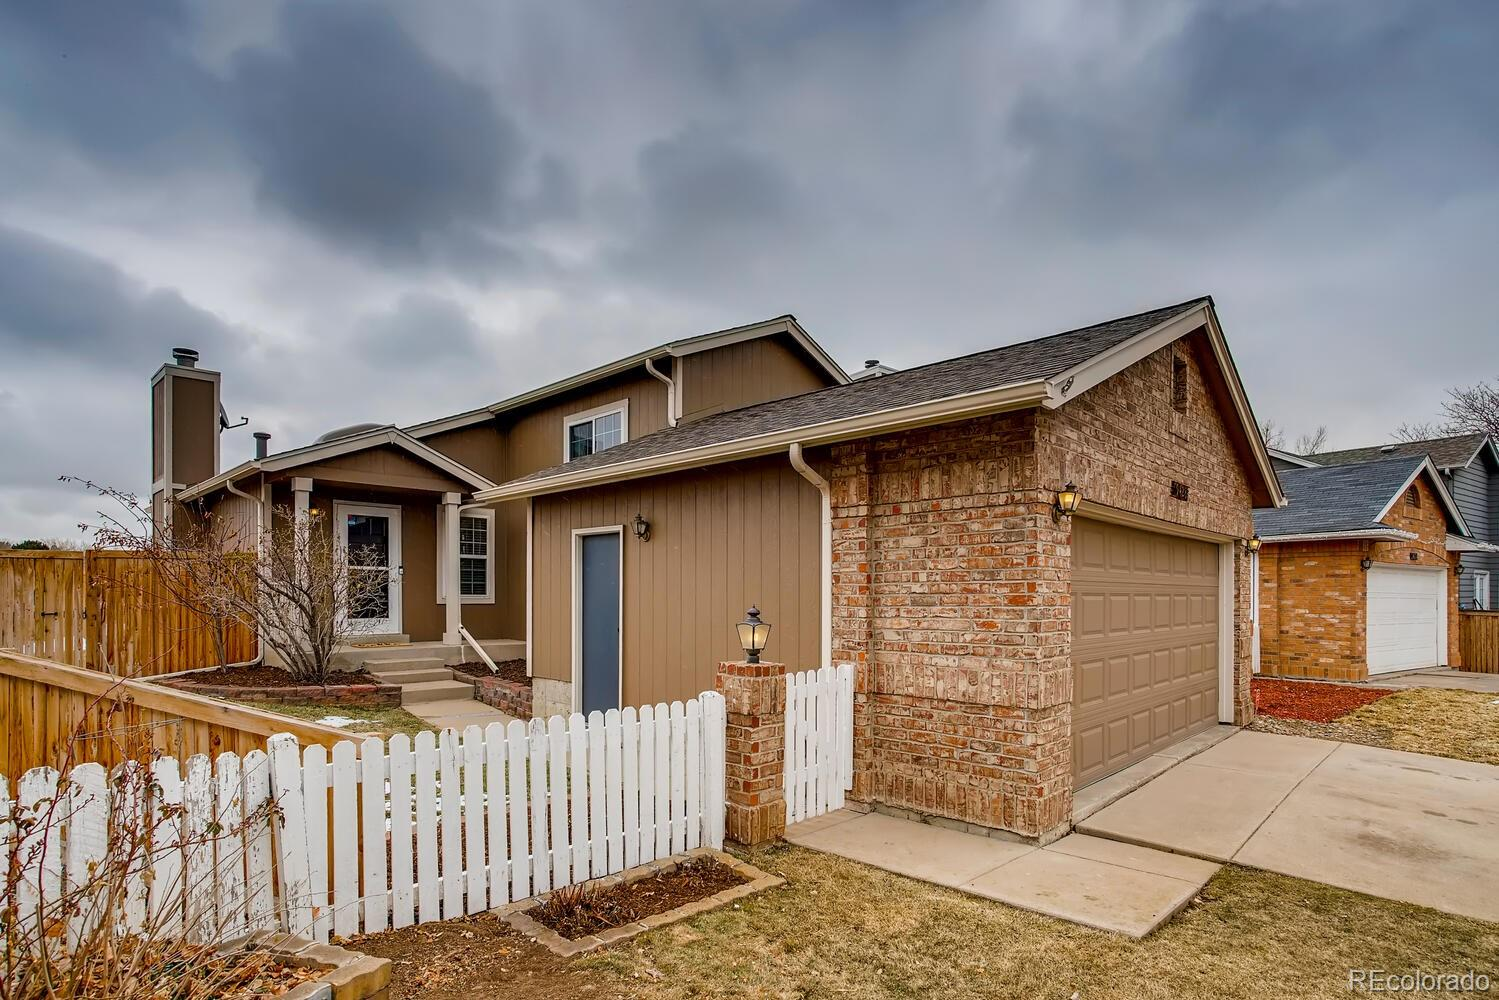 Don't miss the opportunity to own the best Highlands Ranch has to offer in this price point! This charming home backs to open space and has beautiful, unobstructed million-dollar views from the two level outdoor deck (refinished 2020). Tucked away on a quiet street, yet conveniently located to everything Highlands Ranch has to offer (restaurants, shopping, C470 for easy commute to DTC and Santa Fe for easy commute to Denver). This home is owned by an interior designer and it shows; beautifully maintained, updated and the definition of a turnkey home purchase. New/newer HVAC (2015, serviced/certified 2020), hot water heater (2019), outdoor fence (2018), washer/dryer (2018), appliances (2017), roof (2016), sump pump (2020), carpet (2020), Ring doorbell and security cameras (2018), Rachio smart home sprinkler system (2017), exterior paint (2016), and interior paint (2020). DOWNSTAIRS FAMILY ROOM COULD BE CONVERTED TO A THIRD BEDROOM. Bath lovers will also rejoice at the oversized soaker jacuzzi tub in the en-suite master bath. This home is walking distance from a highly rated public elementary school (Bear Canyon) and the trail system in Highlands Ranch is unparalleled for the outdoor enthusiast looking to get out exploring in their own backyard. This home is truly Colorado living at its finest for under $420,000! Showings will end Sunday 1/10 at 6pm.